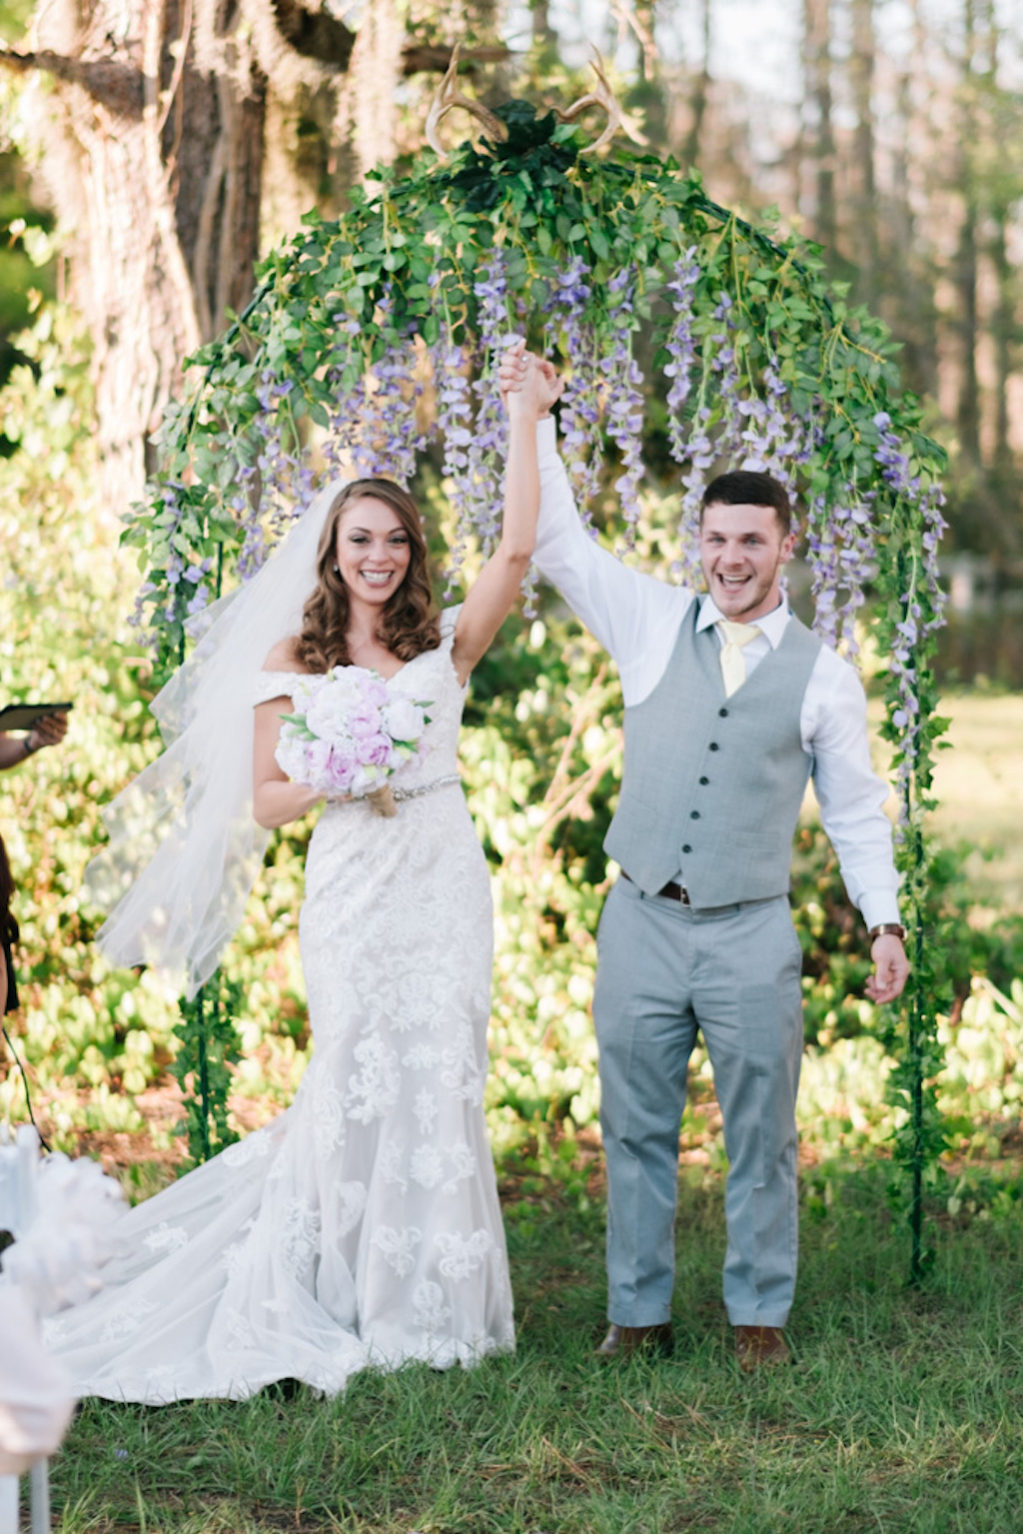 Outdoor Farm Wrought Iron Wedding Ceremony Arch with Hanging Purple Lilac Floral and Greenery | Tampa Bay Rustic Chic Private Home Estate Wedding Venue Southern Plantation Oasis